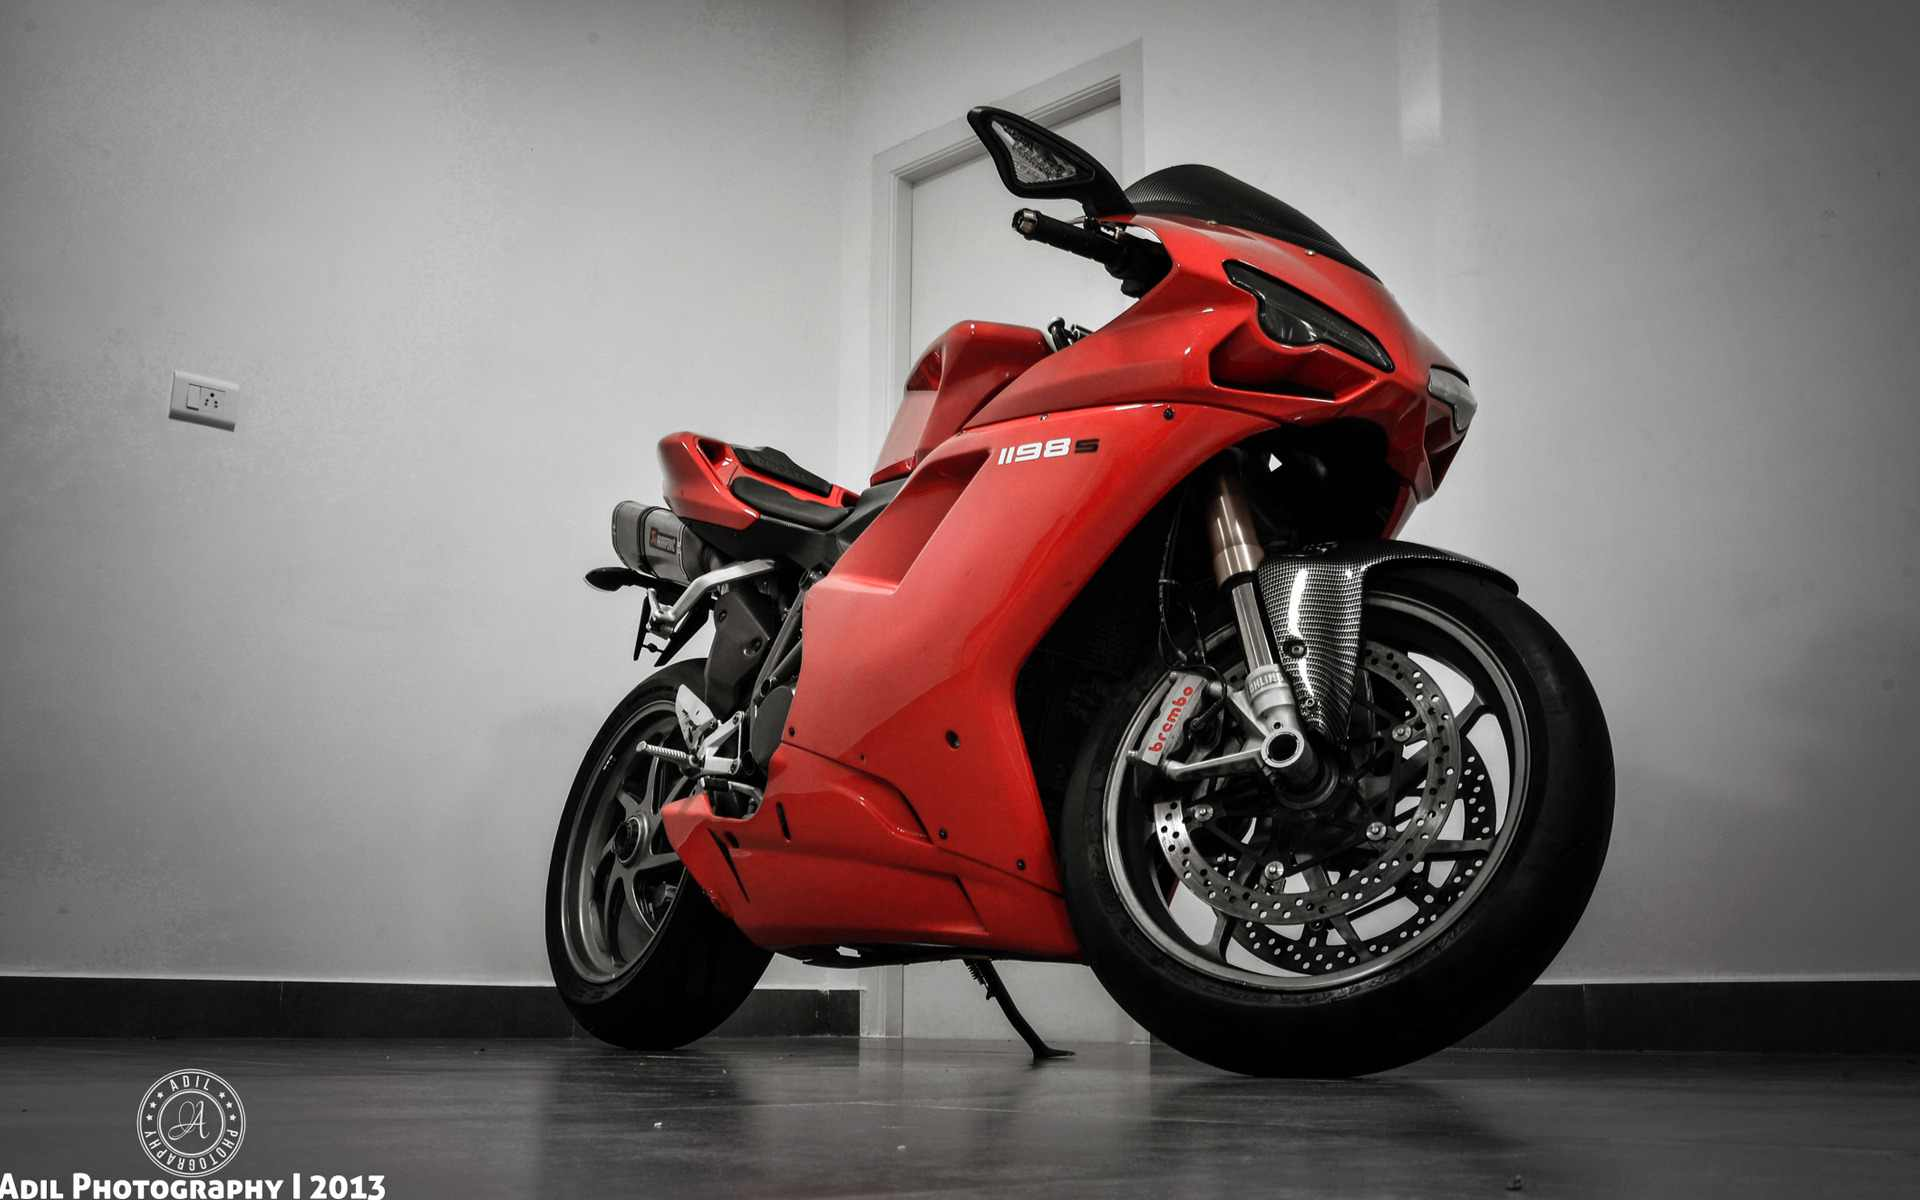 Ducati Motobike Wallpapers For Pc: 2014 Ducati 899 Panigale Wallpapers